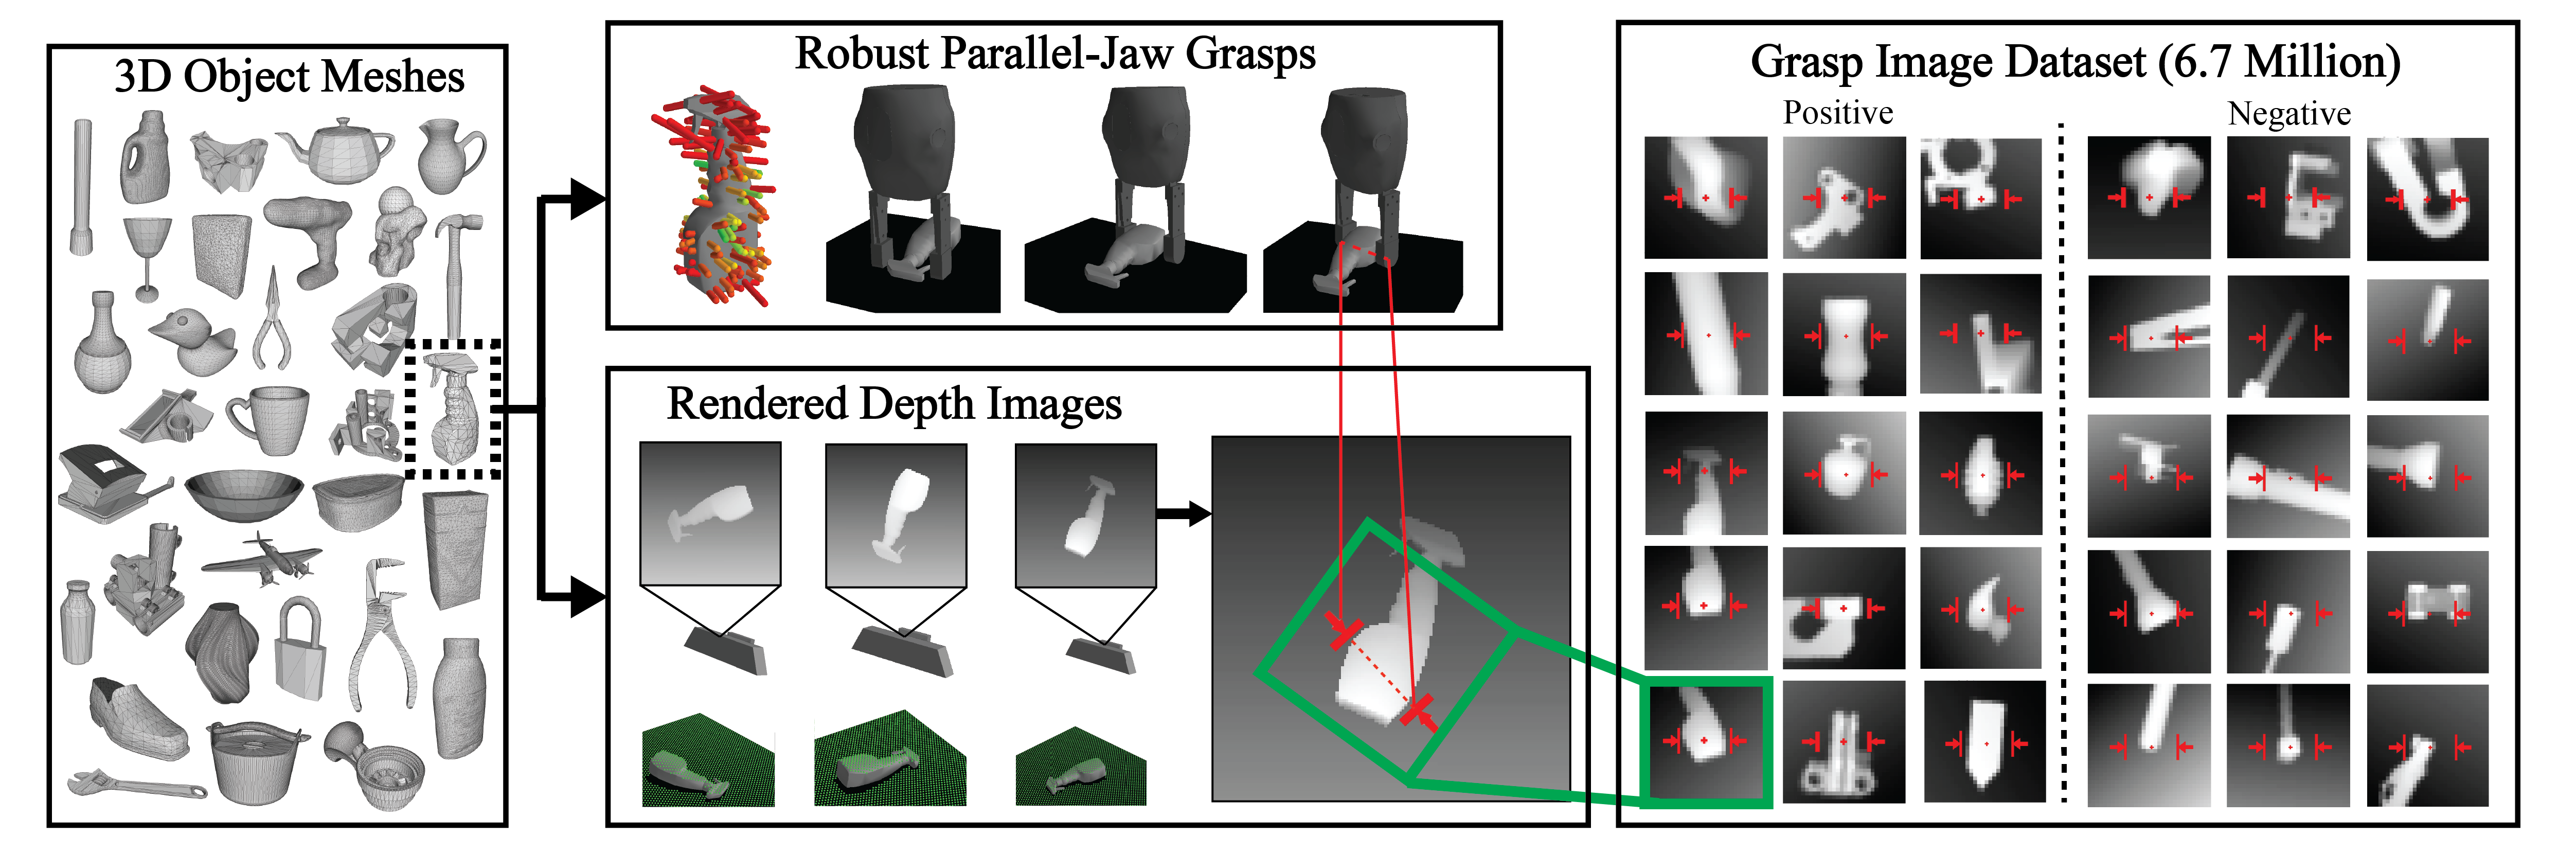 Dex-Net 2.0 pipeline for training dataset generation. (Left) The database contains 1,500 3D object mesh models. (Top) For each object, we sample hundreds of parallel-jaw grasps to cover the surface of each 3D model and evaluate the analytic robustness using sampling. For each stable pose of the object we associate a set of grasps that are perpendicular to the table and collision-free for a given gripper model. (Bottom) We also render depth images of each object in each stable pose, with the planar object pose and camera pose sampled uniformly at random. Every grasp for a given stable pose is associated with a pixel location and orientation in the rendered image. (Right) Each image is rotated, translated, cropped, and scaled to align the grasp pixel location with the image center and the grasp axis with the middle row of the image, creating a